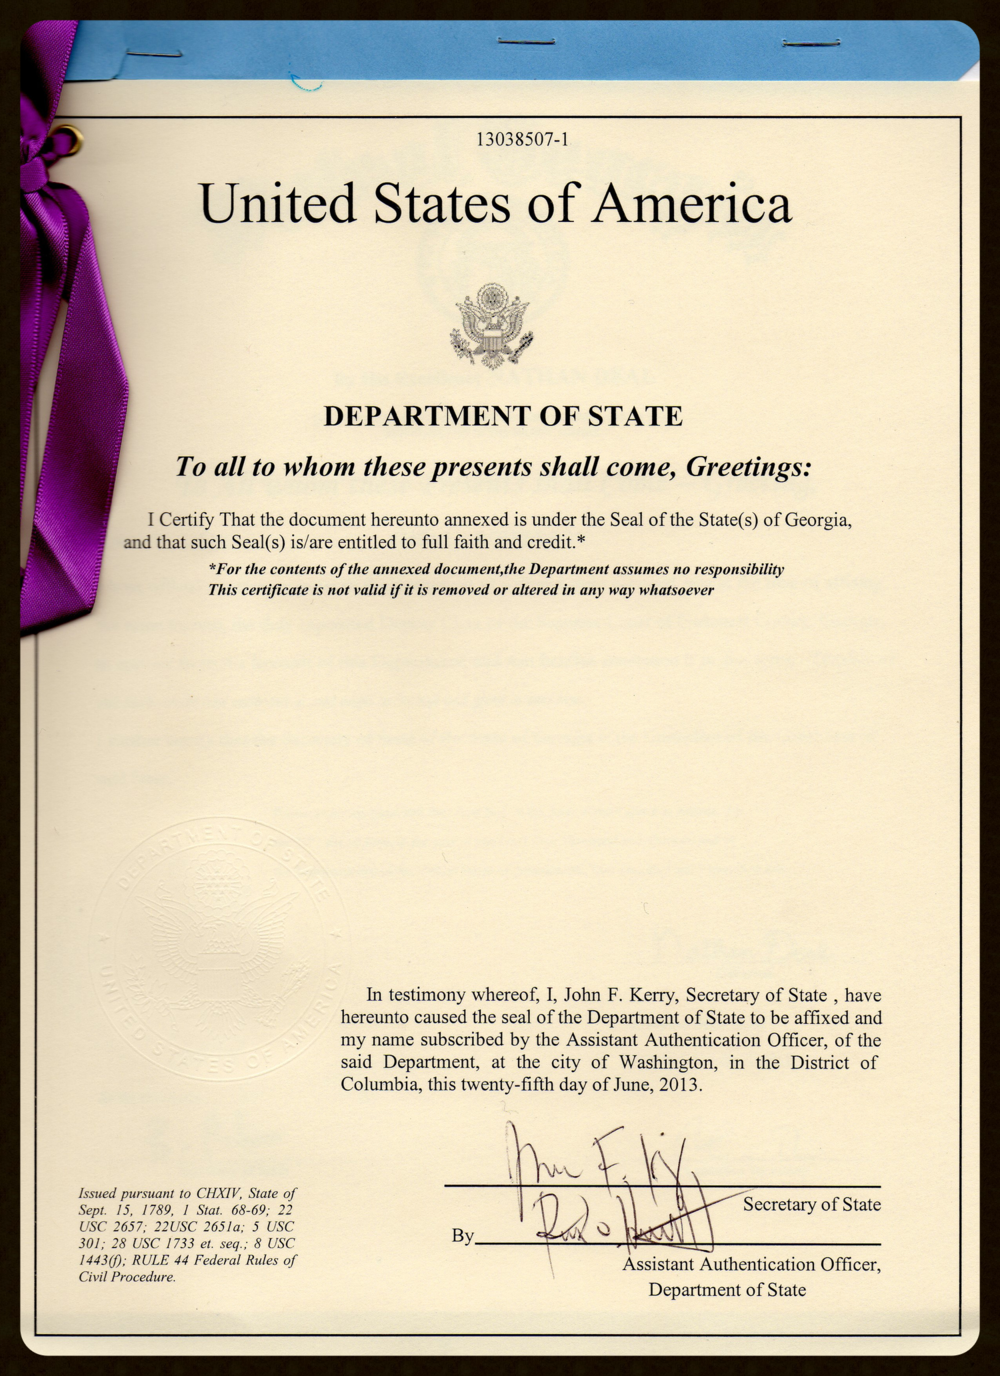 "ANNEXED UNDER THE SEAL OF THE STATE OF GEORGIA IS/ARE ENTITLED TO FULL FAITH AND CREDIT.*        FULL FAITH AND CREDIT IS   ""RECOGNITION, ACCEPTANCE AND ENFORCEMENT OF THE LAWS, ORDERS AND JUDGMENT OF ANOTHER JURISDICTION; SPECIF., THE RECOGNITION BY ONE STATE OF ANOTHER STATE'S LEGAL DECISION.""           TITLE 22 —    FOREIGN RELATIONS [ 22 CFR ]"